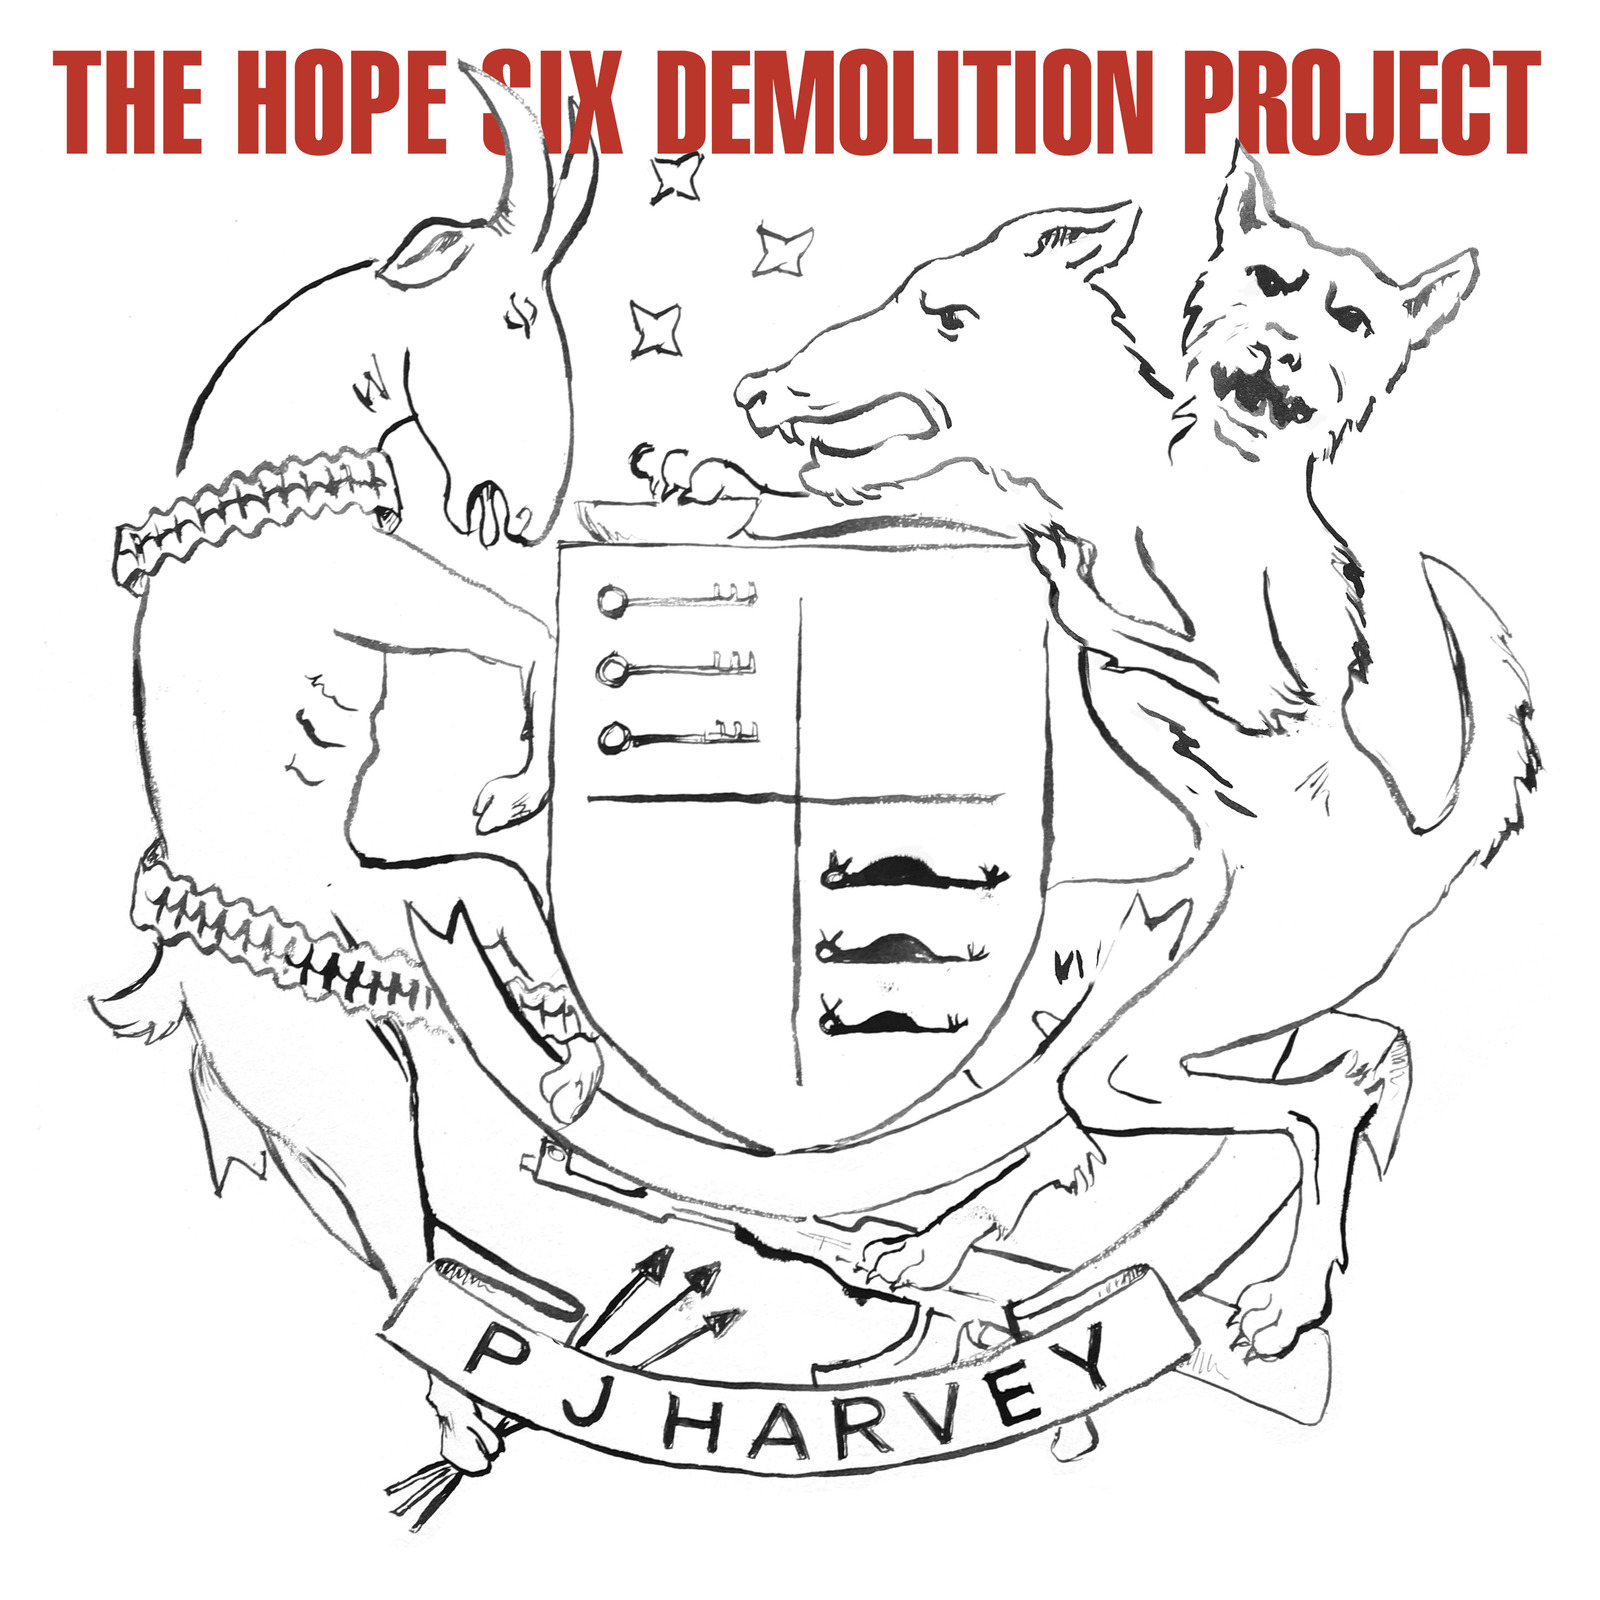 The Hope Six Demolition Project by PJ Harvey image